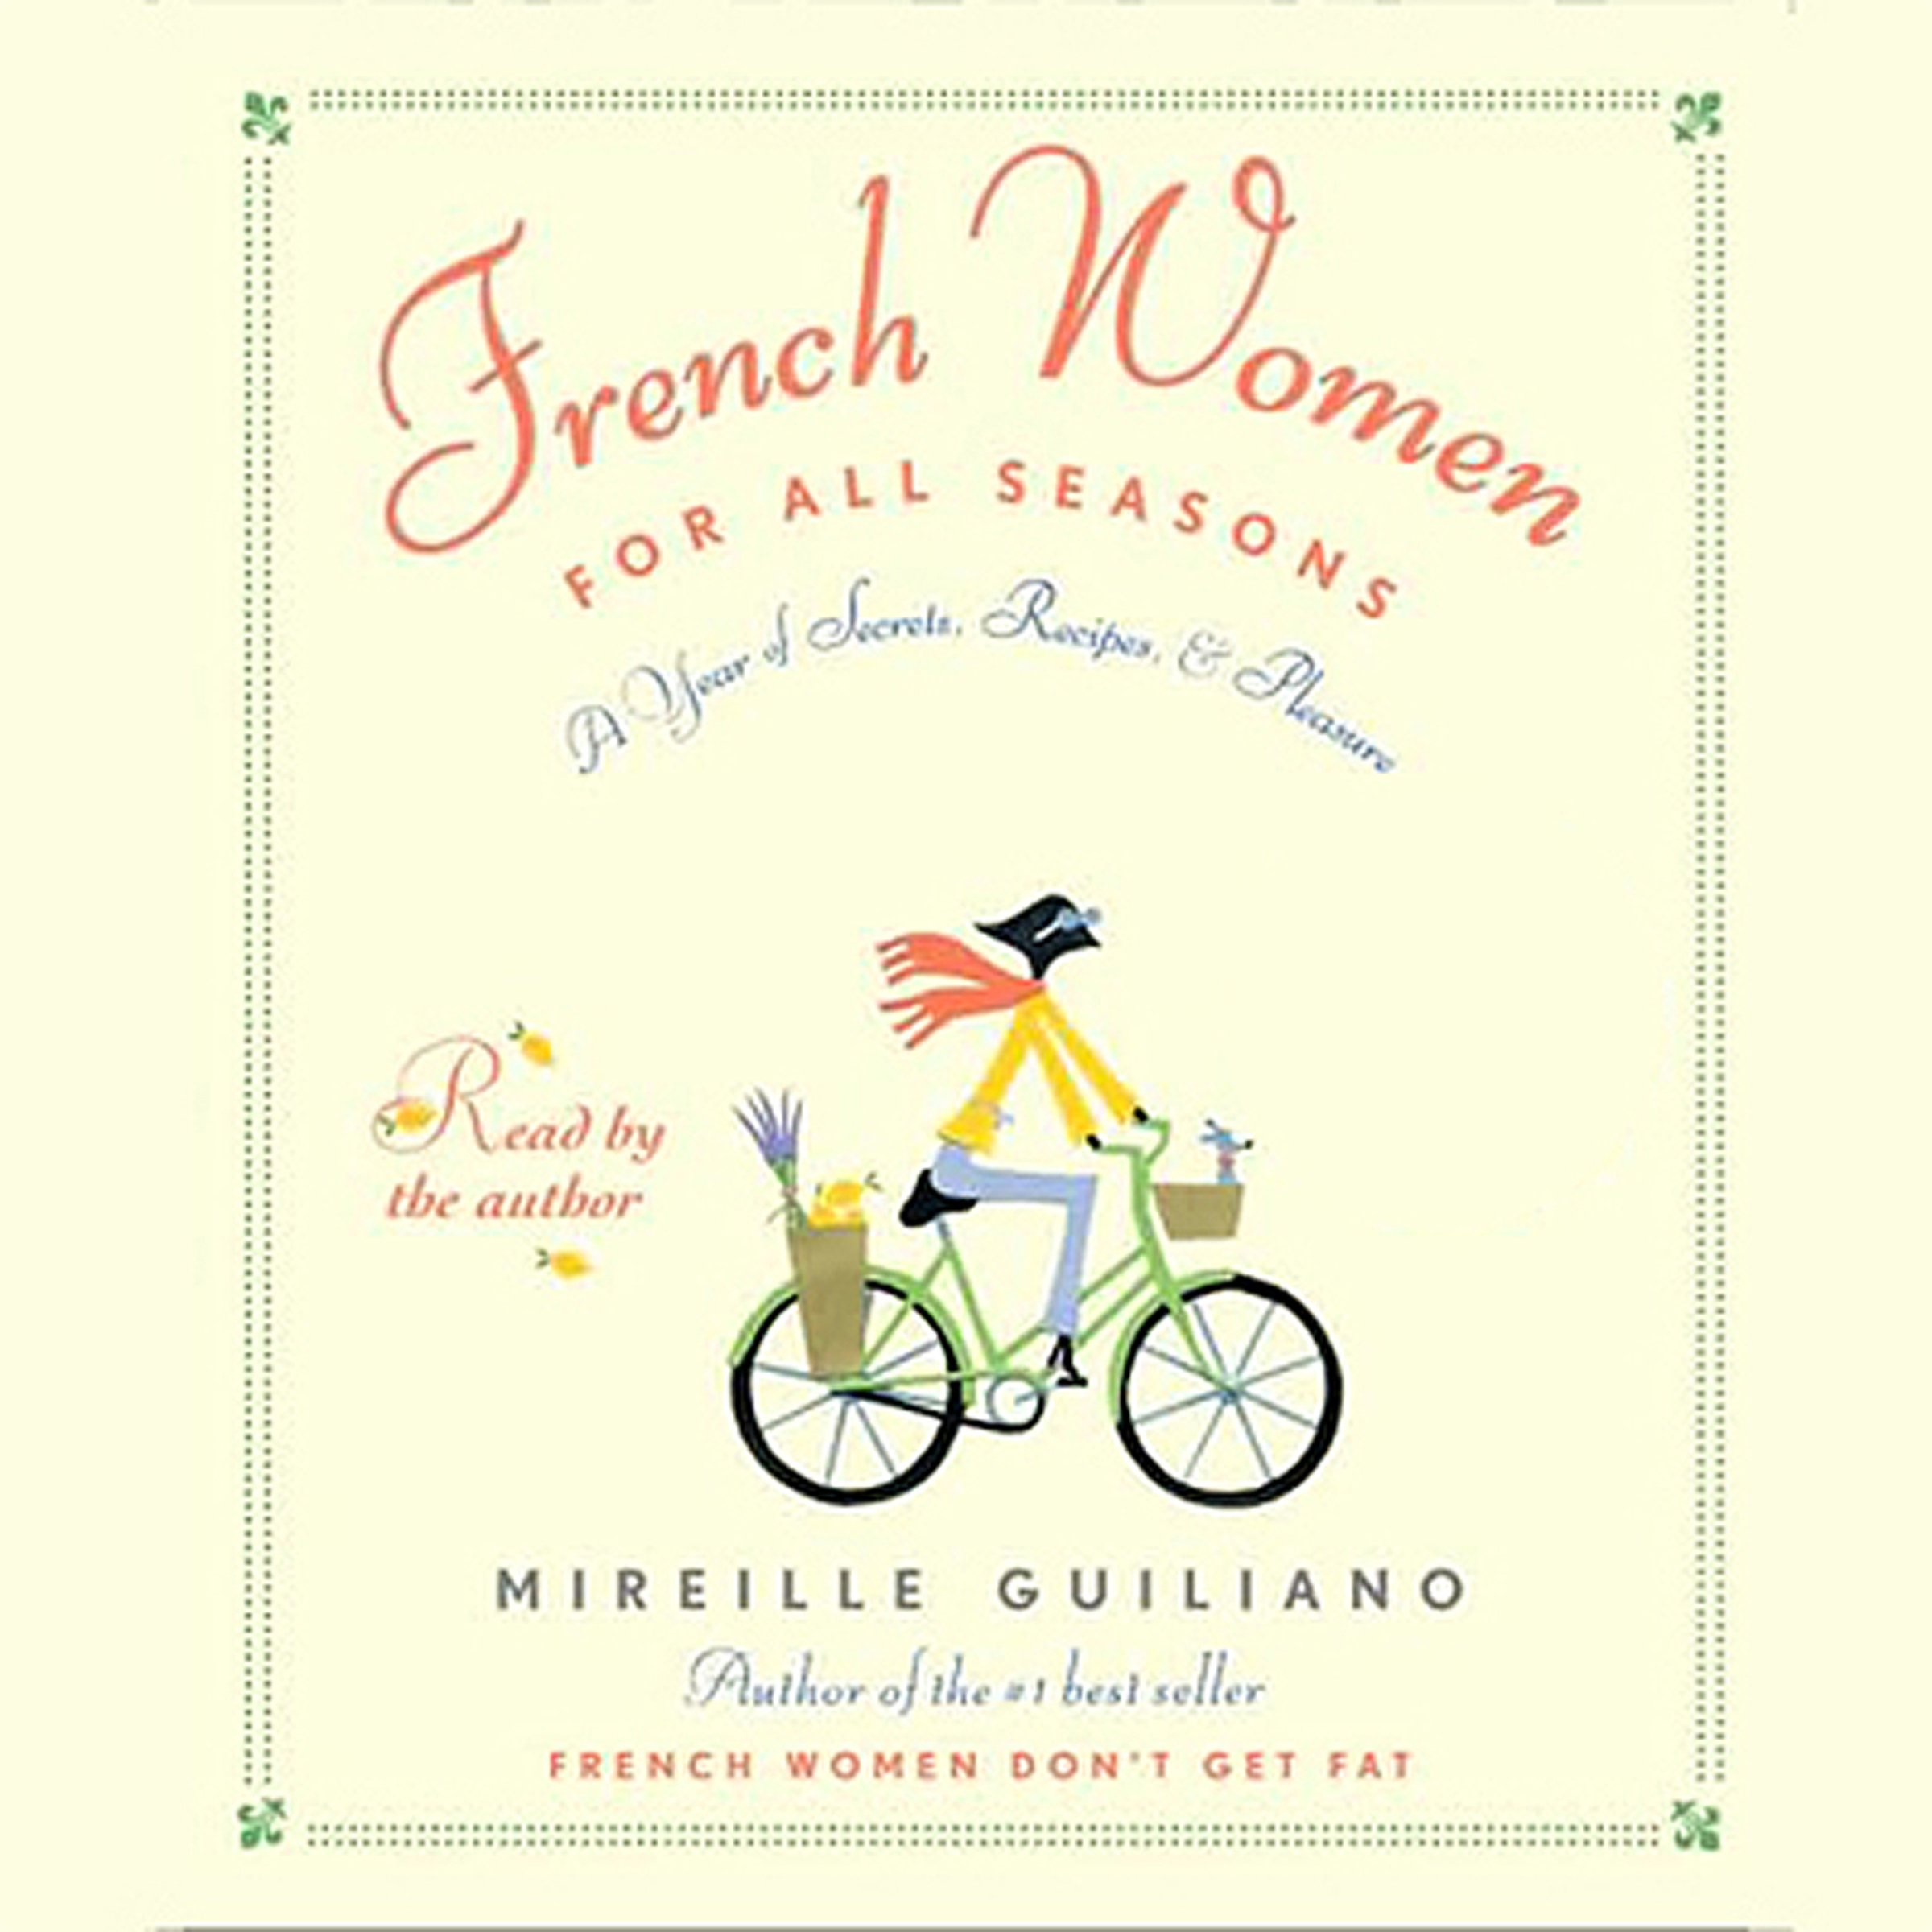 French Women for All Seasons: A Year of Secrets, Recipes, Pleasure